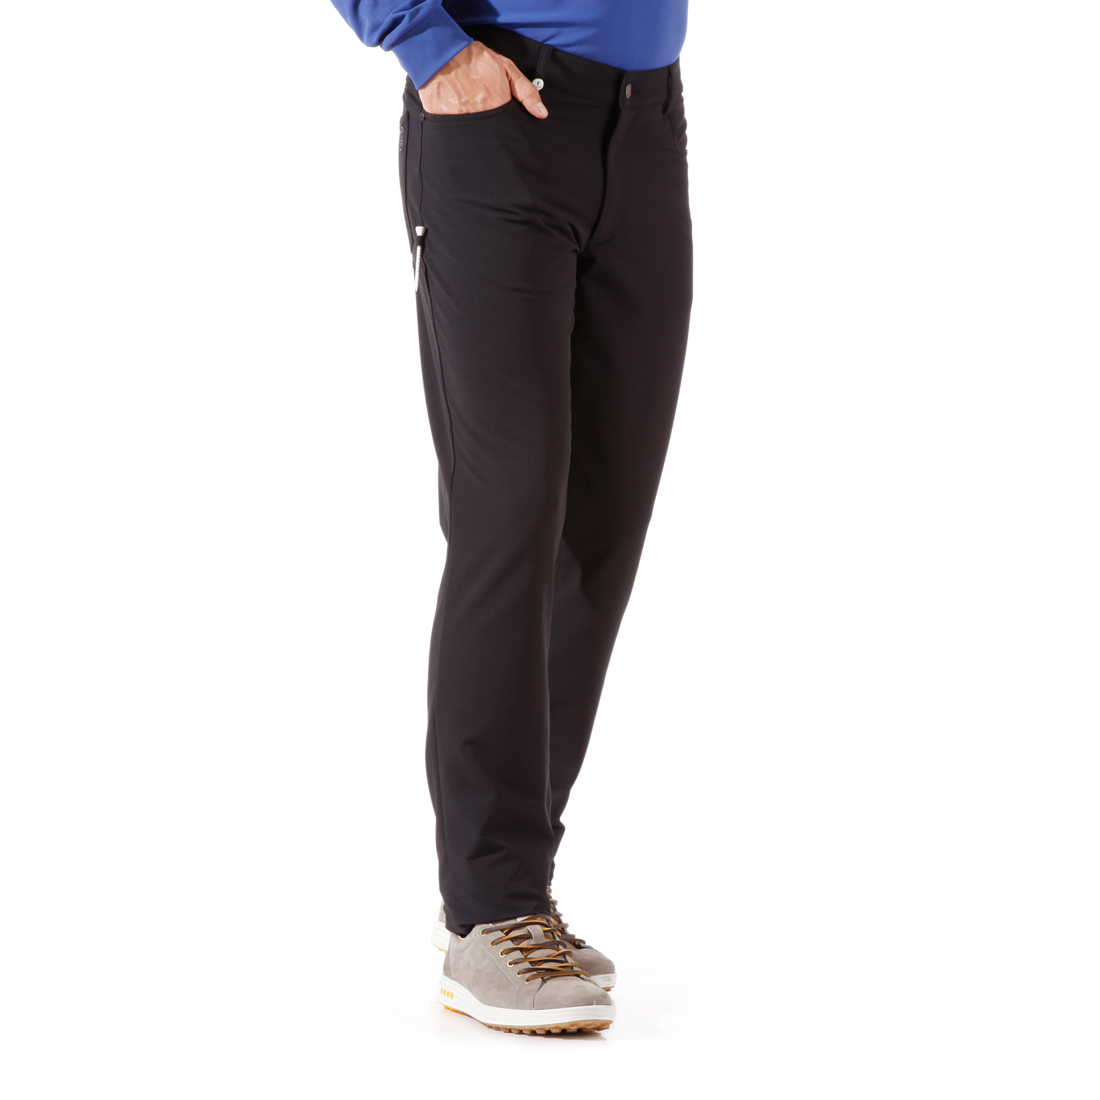 5-Pocket 4-Way Stretch-Hosen